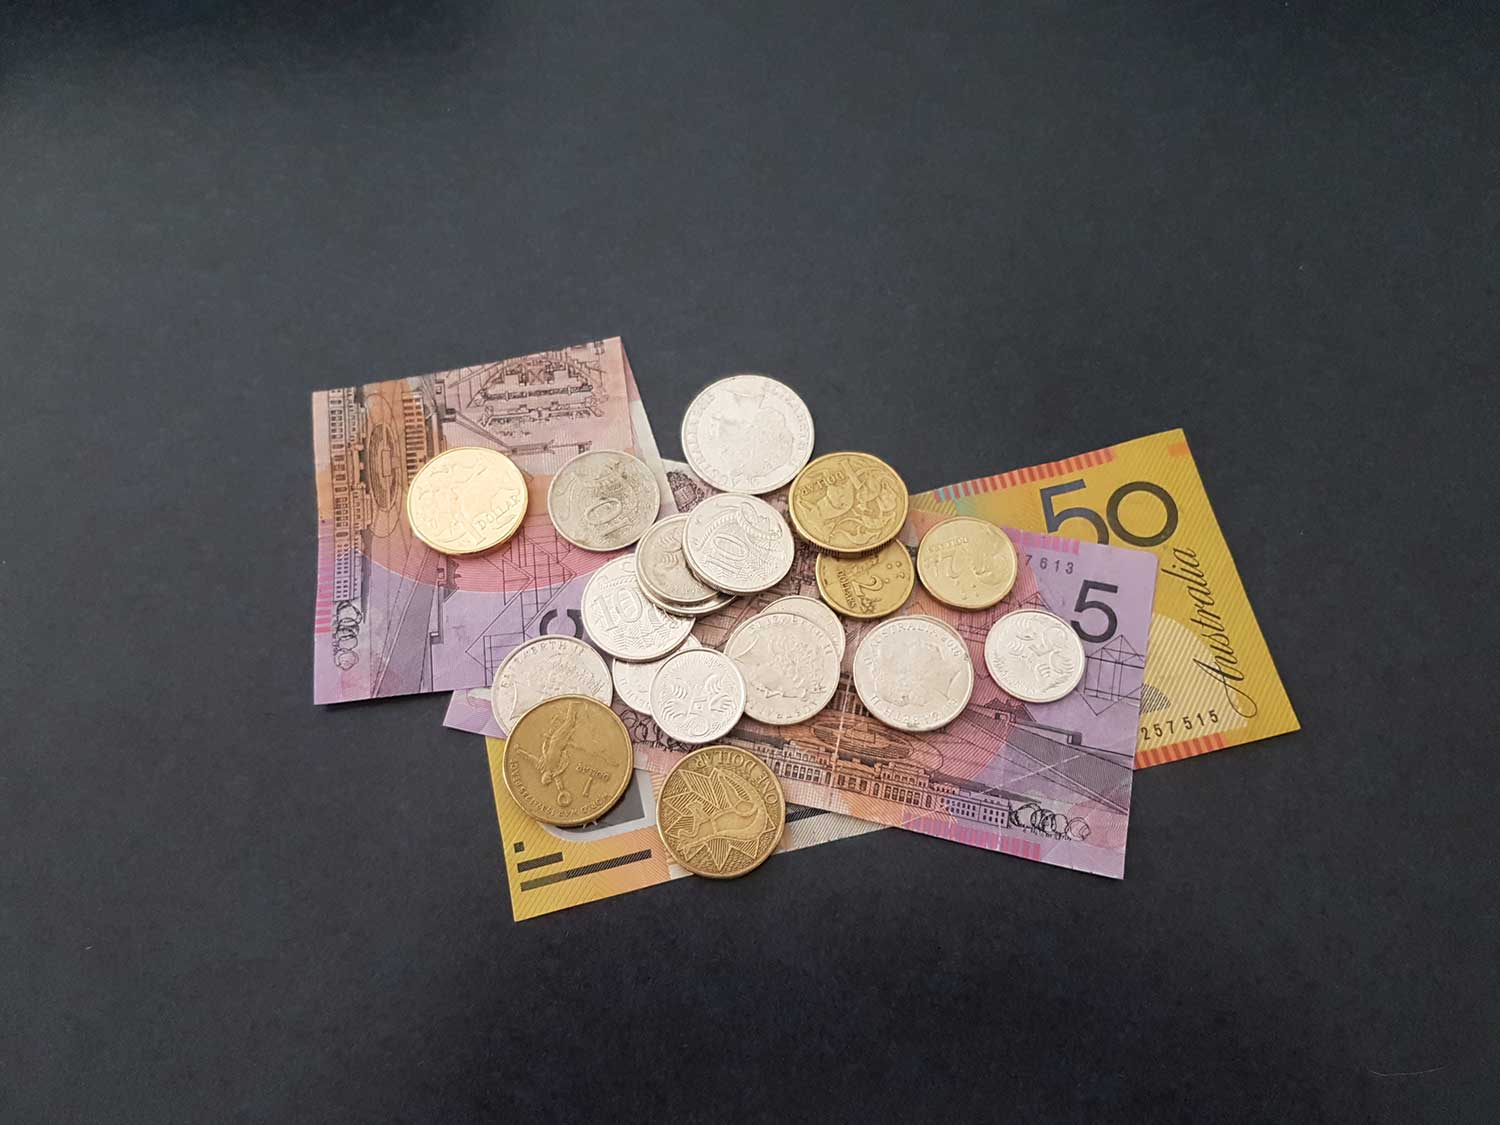 photo of money notes and coin